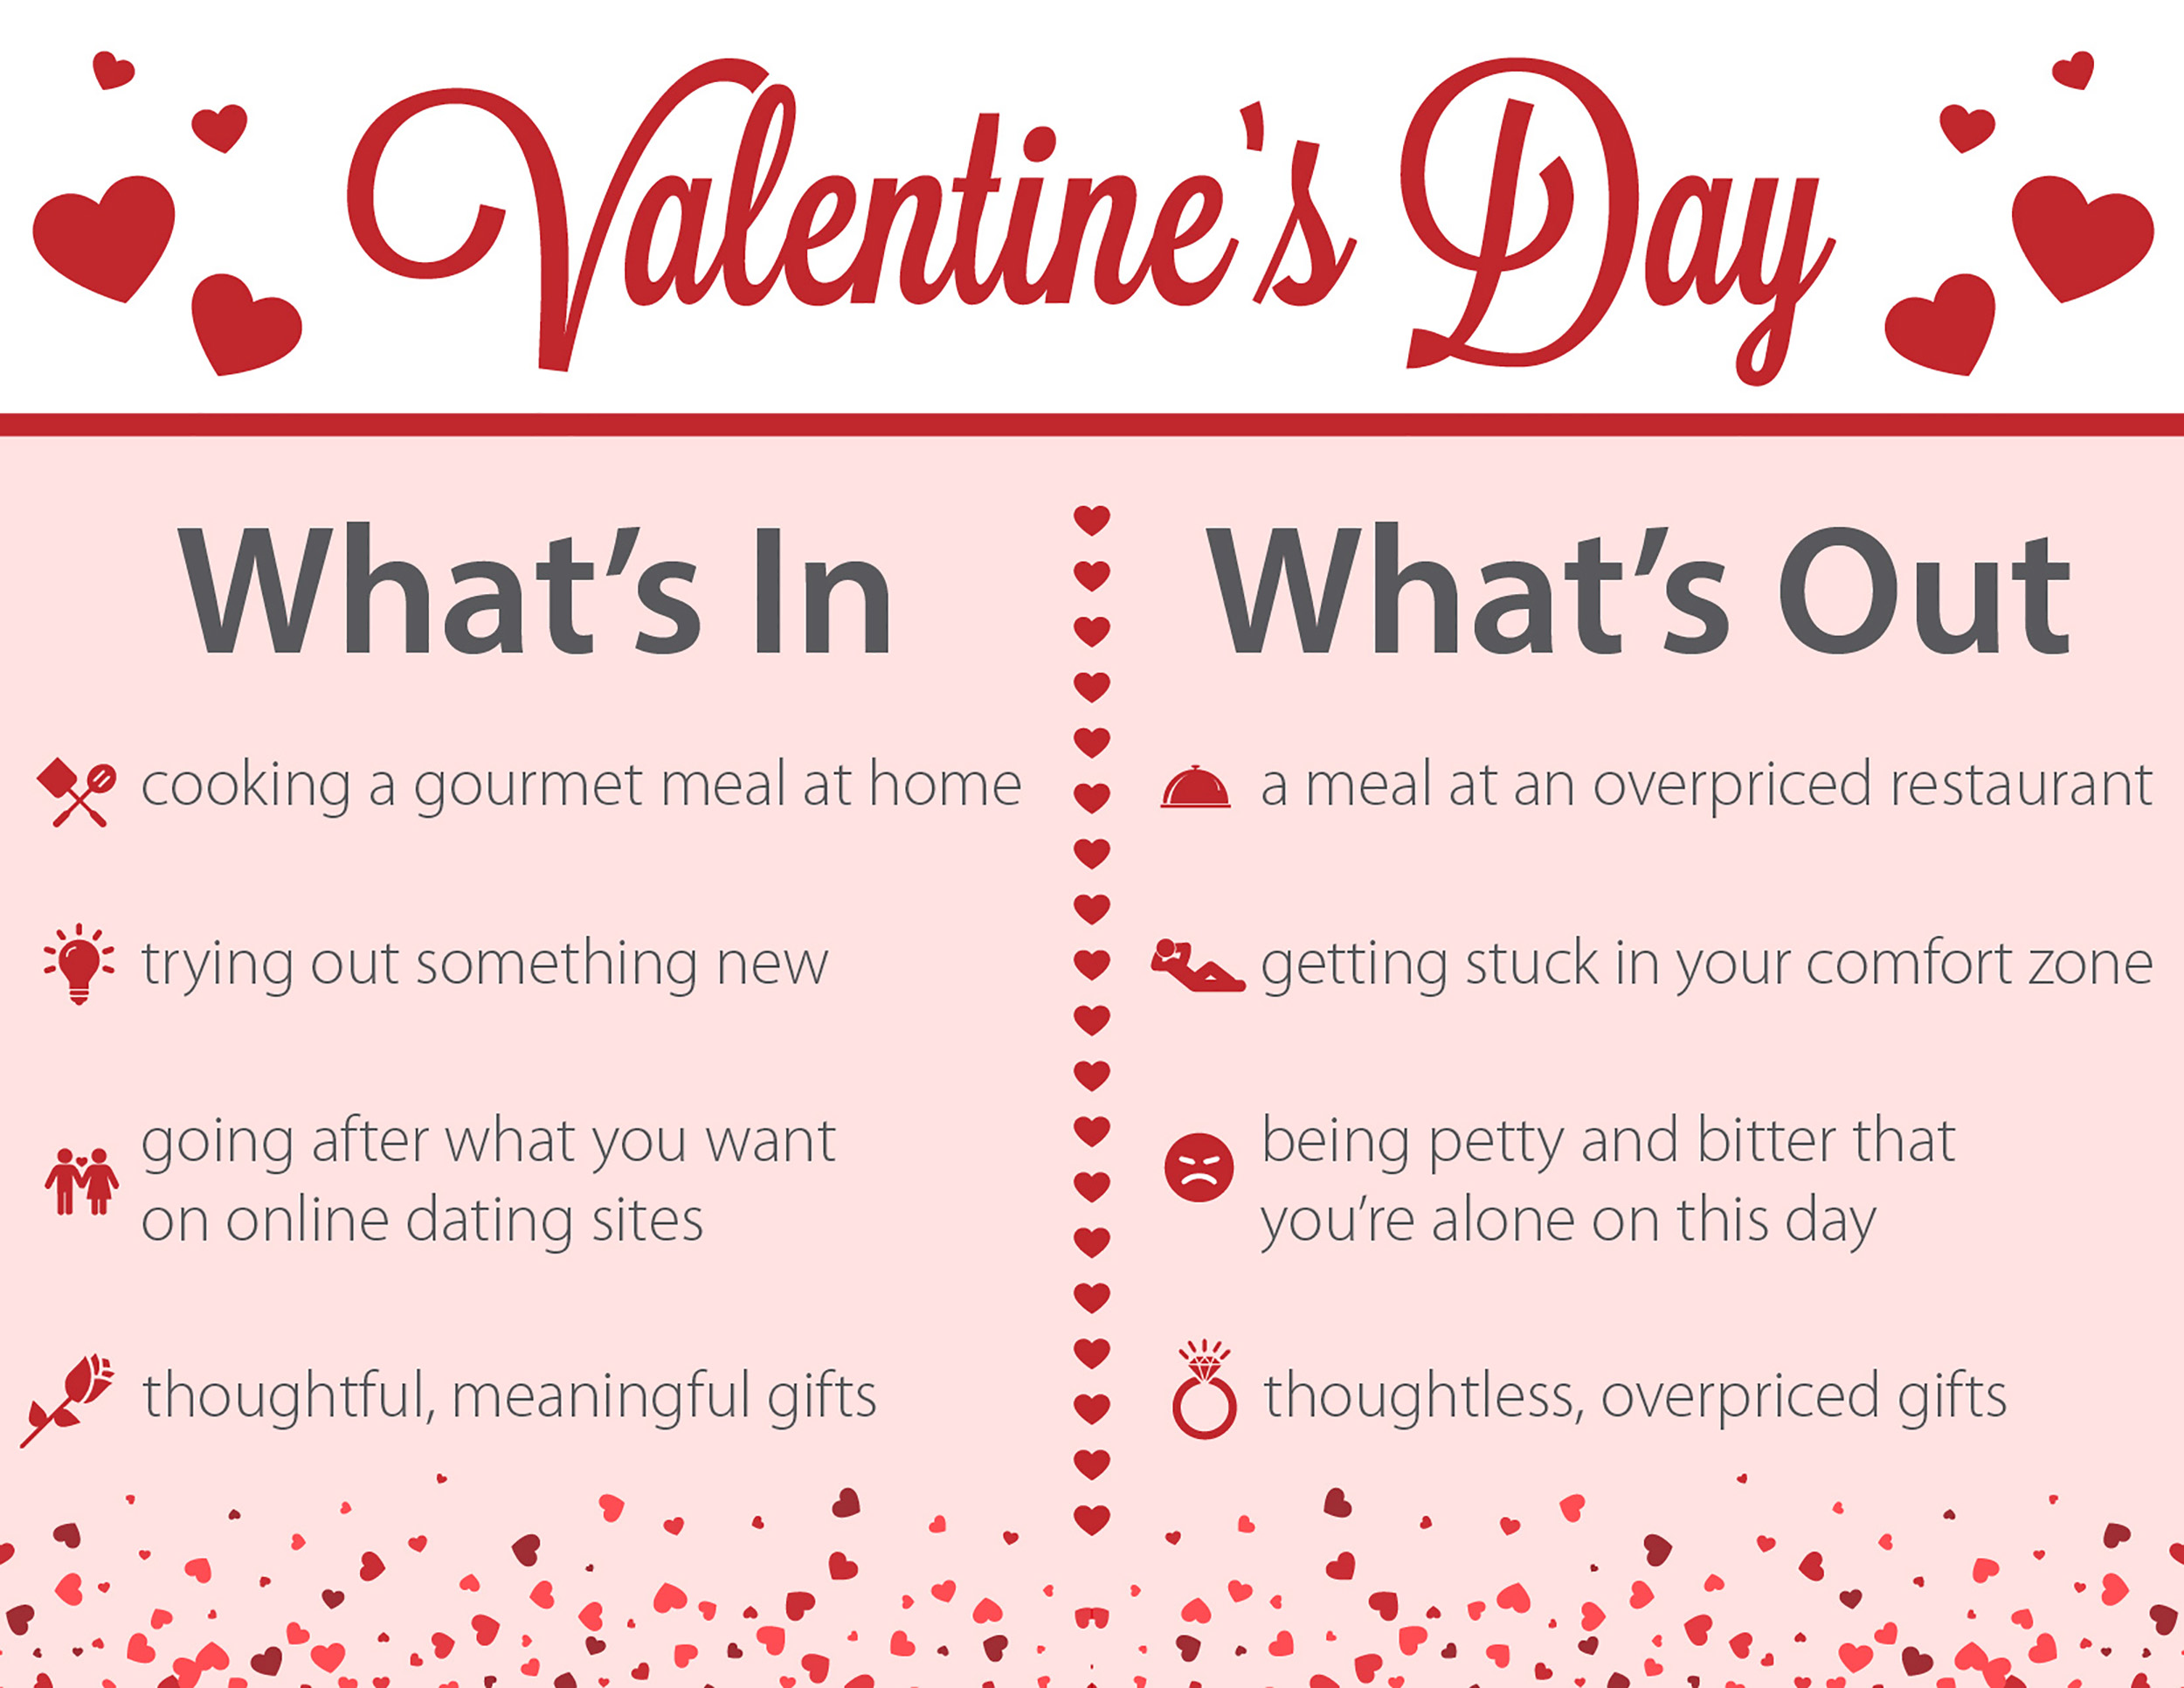 Valentine's Day What's In & Out